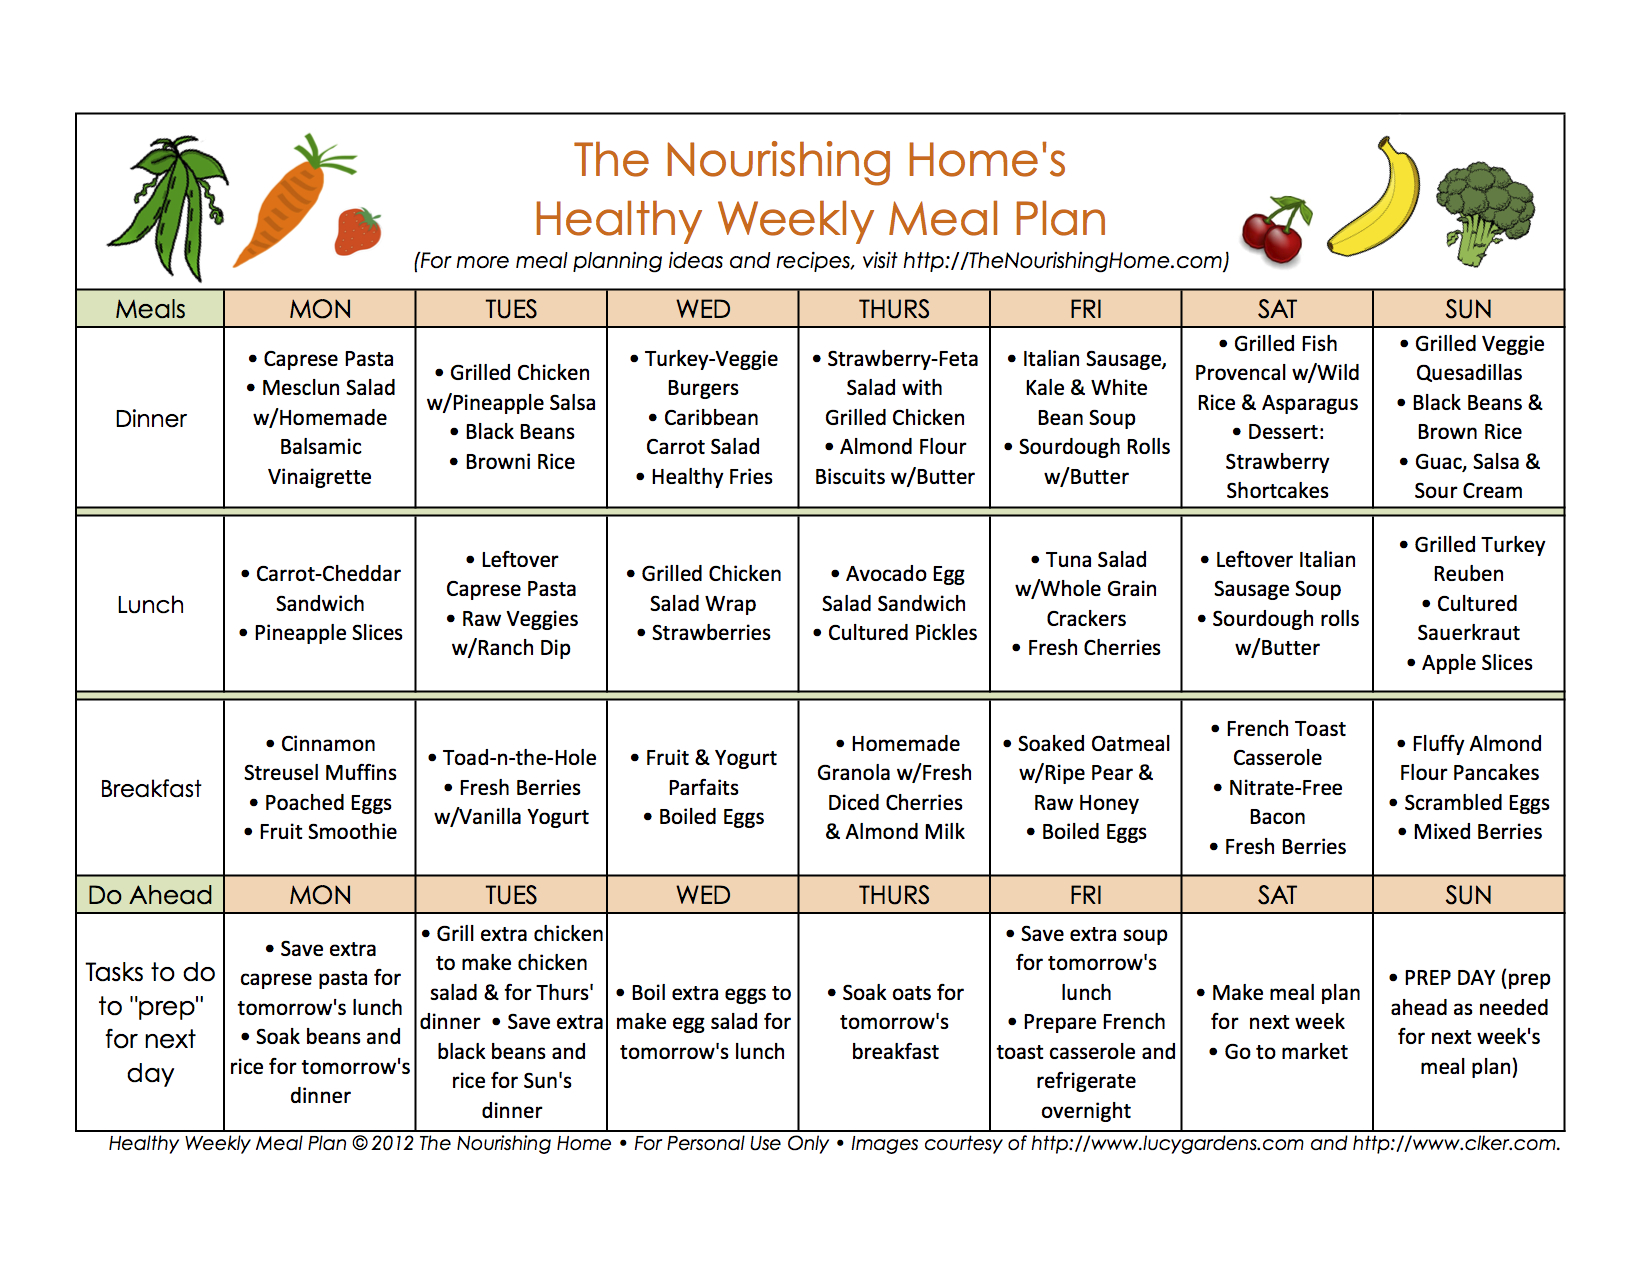 Mastering Meal Planning - The Nourishing Home